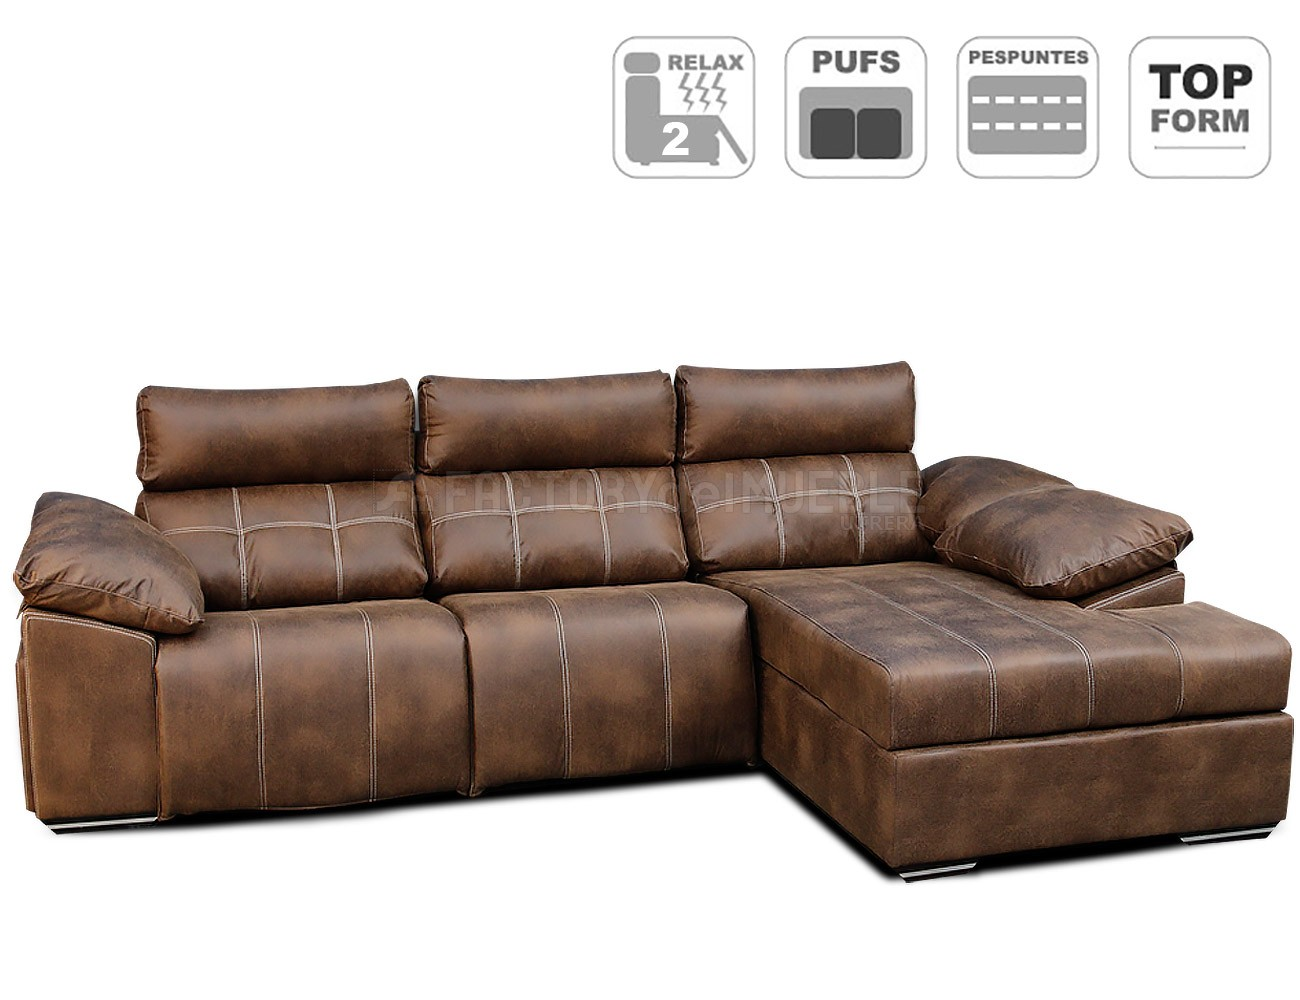 Sofa chaiselongue relax electrico 2 motores detalle